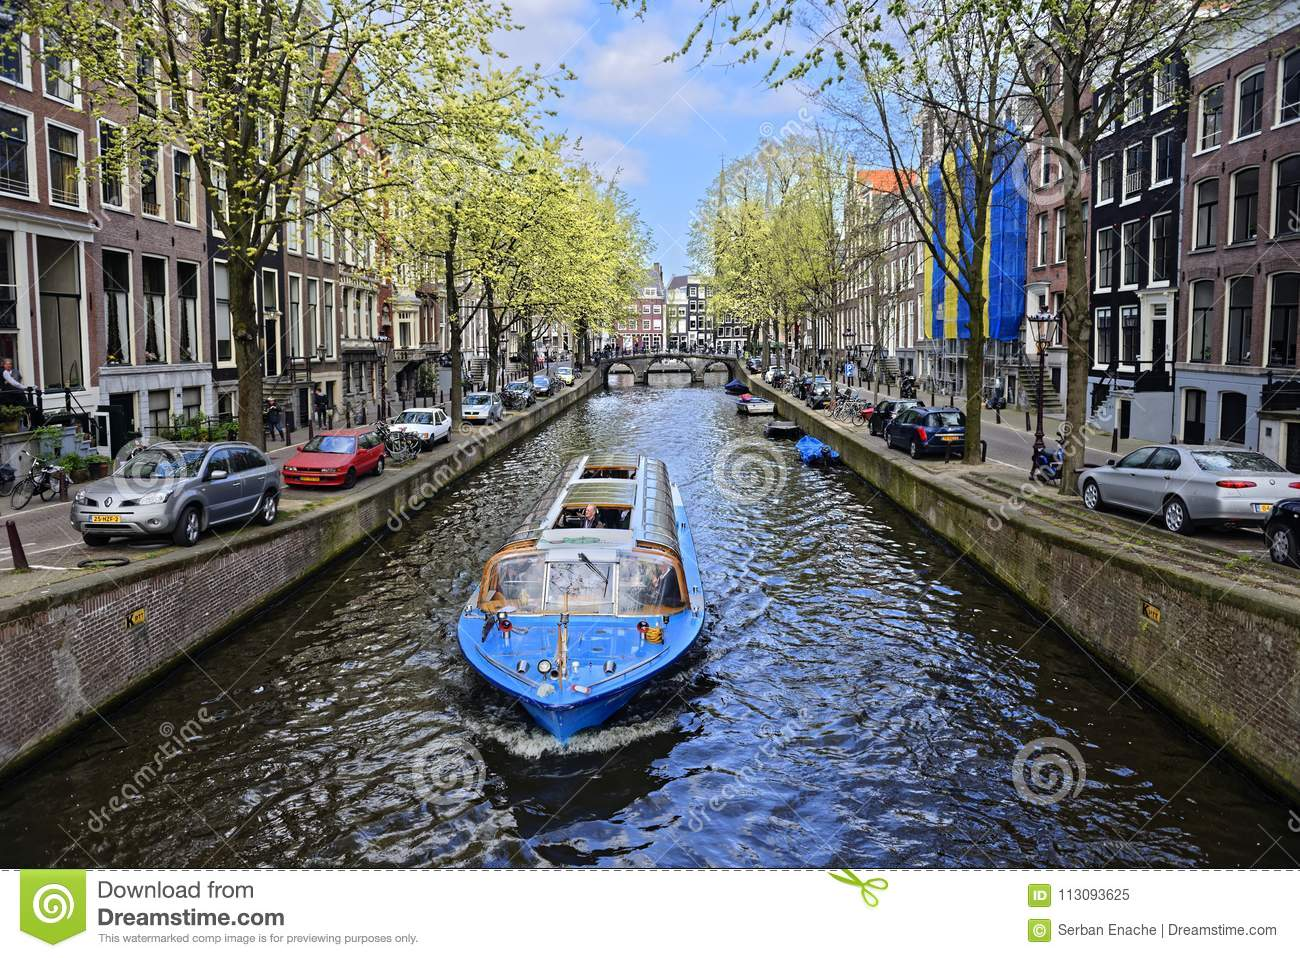 Boat on canal in Amsterdam